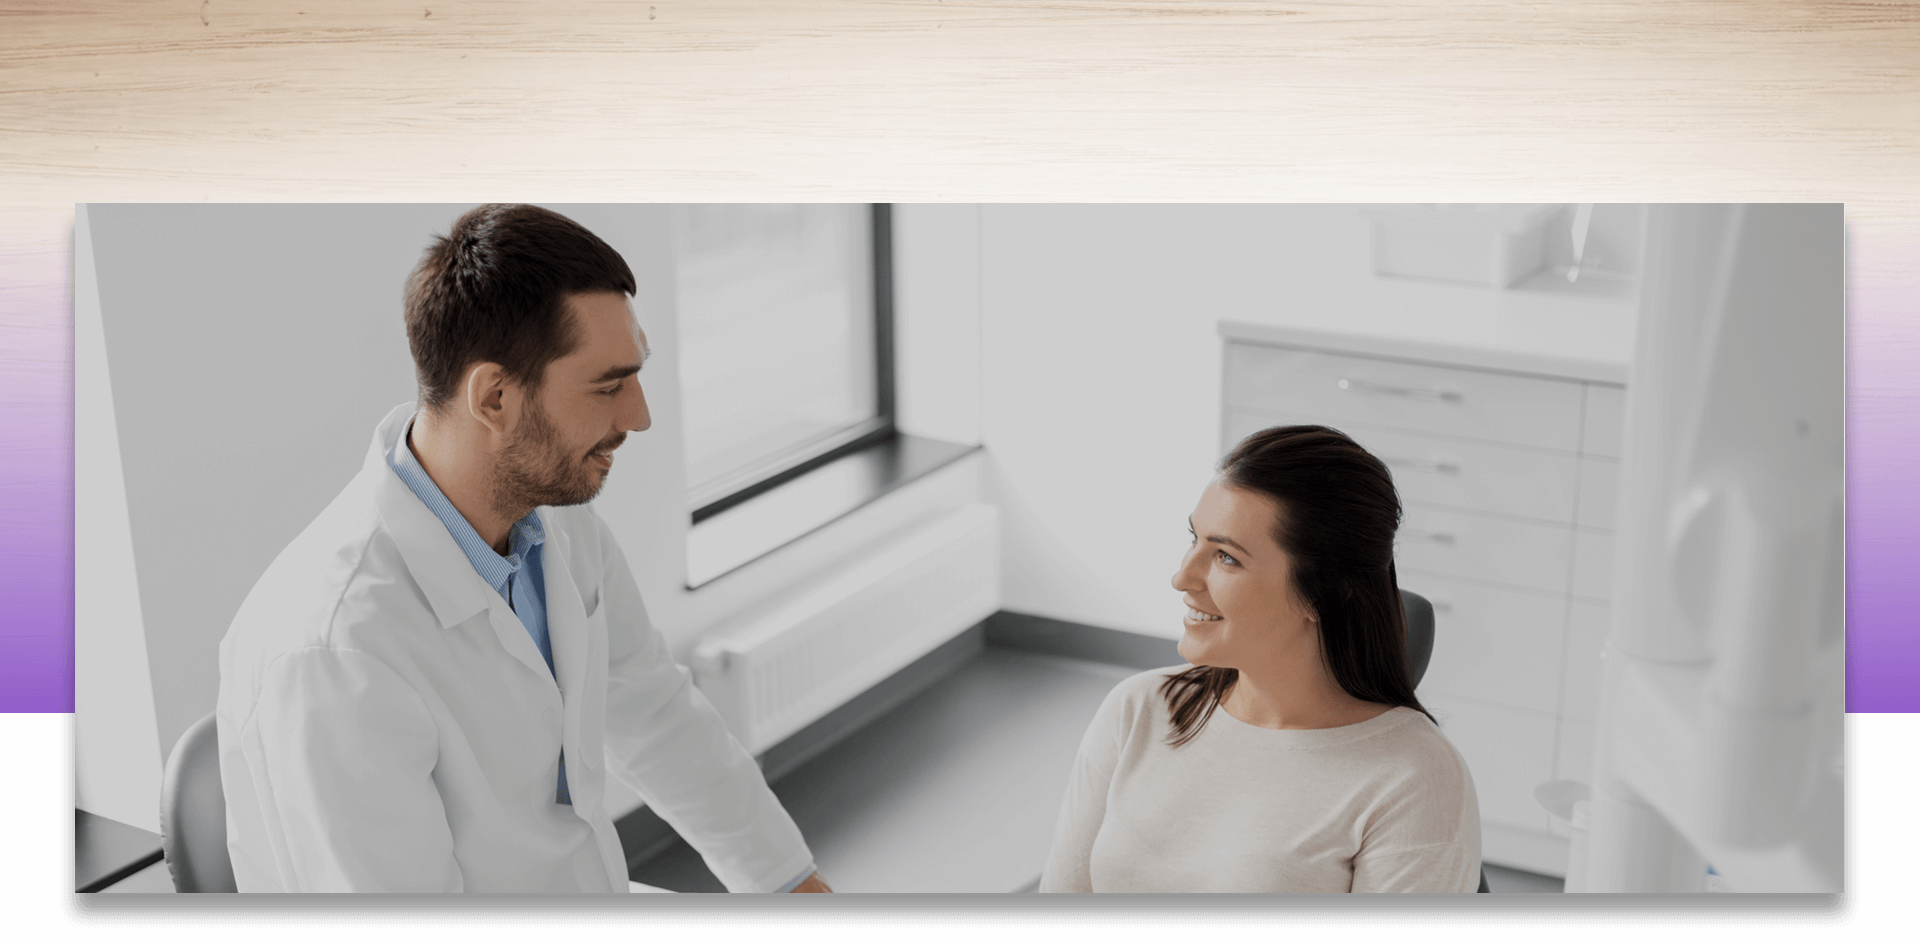 Dentist and patient smiling at each other while discussing